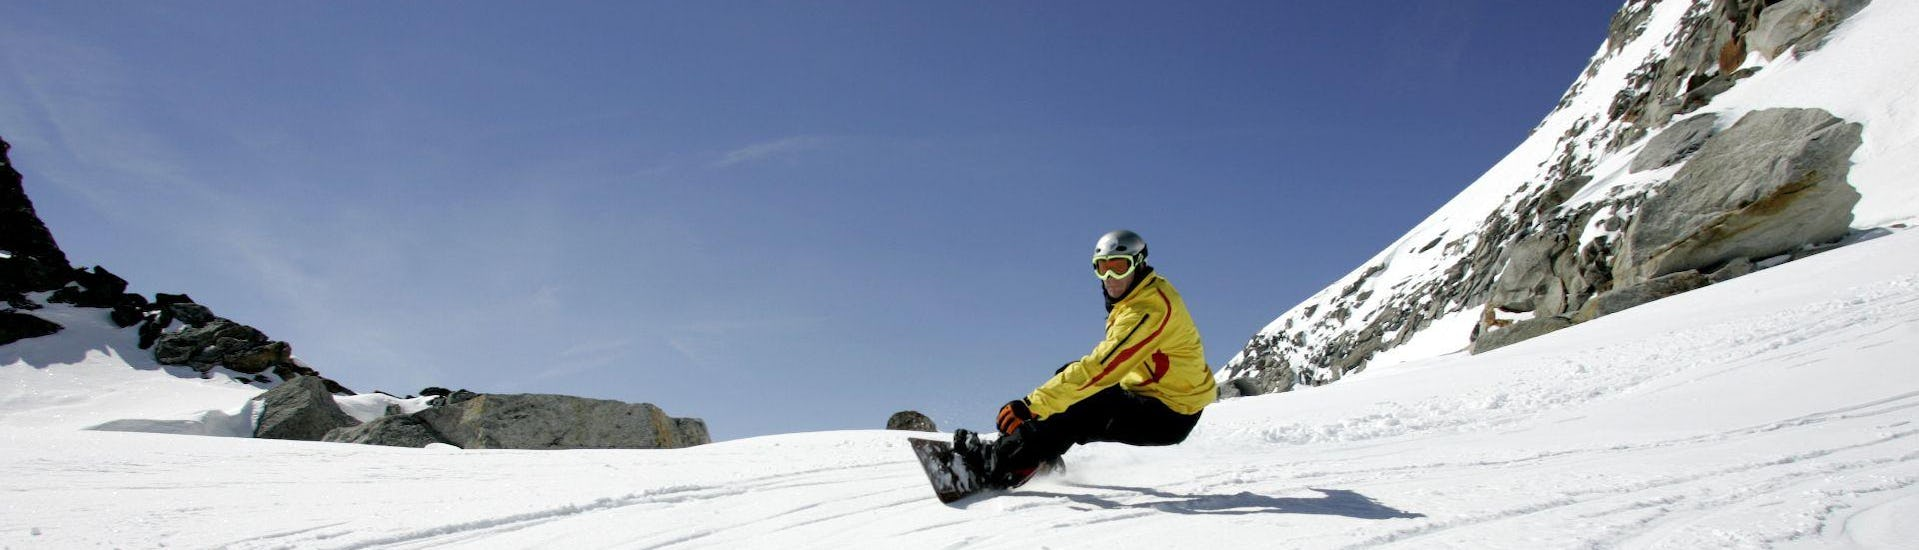 Snowboard Lessons for Kids (6-11 years) - All Levels